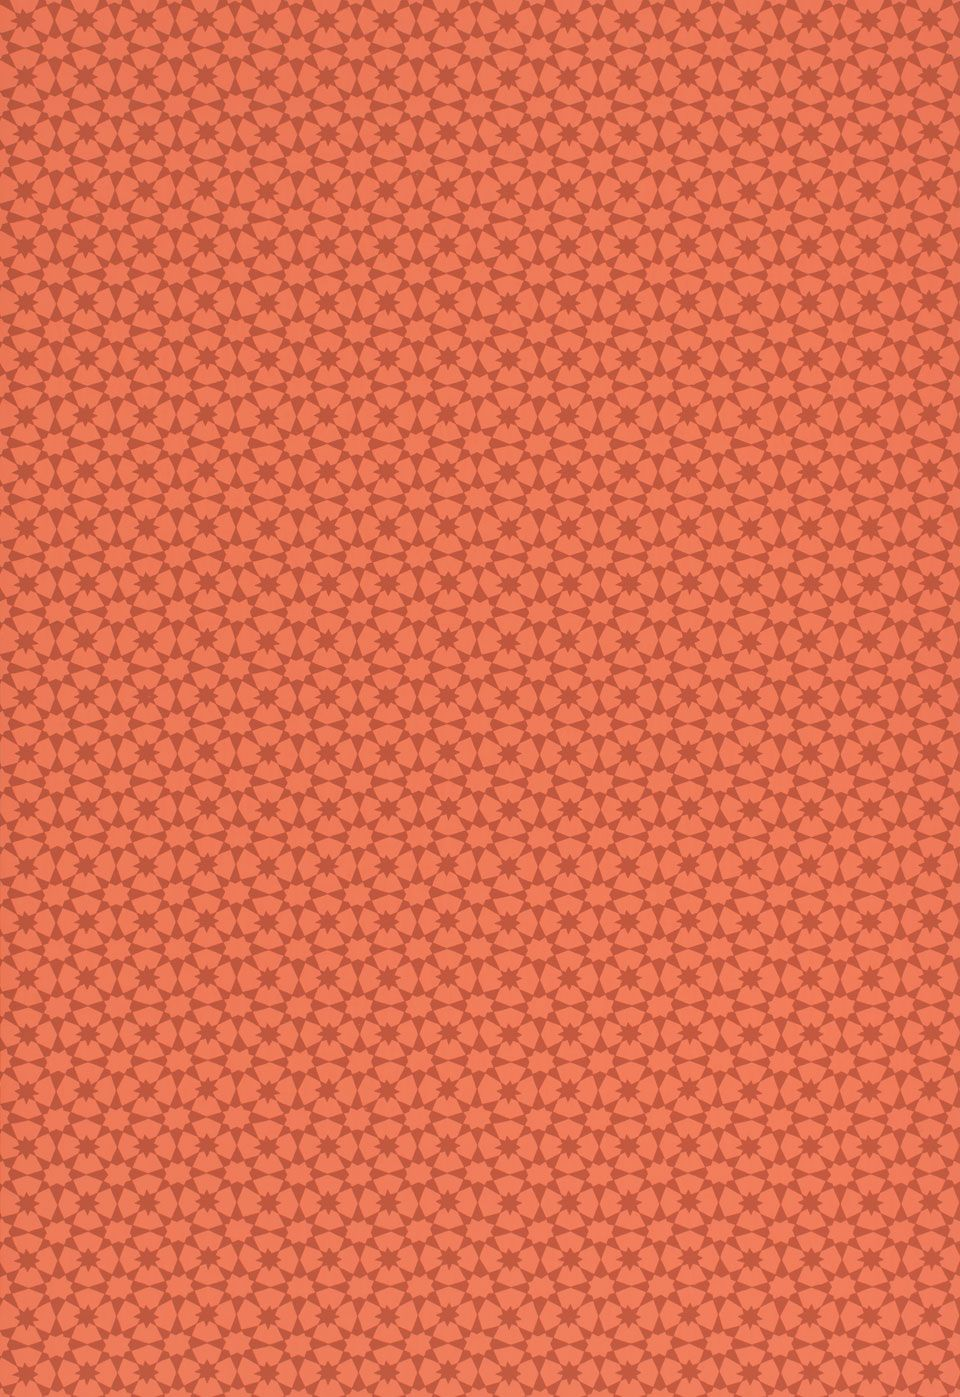 Wallcovering / Wallpaper | Medina in Persimmon | Schumacher